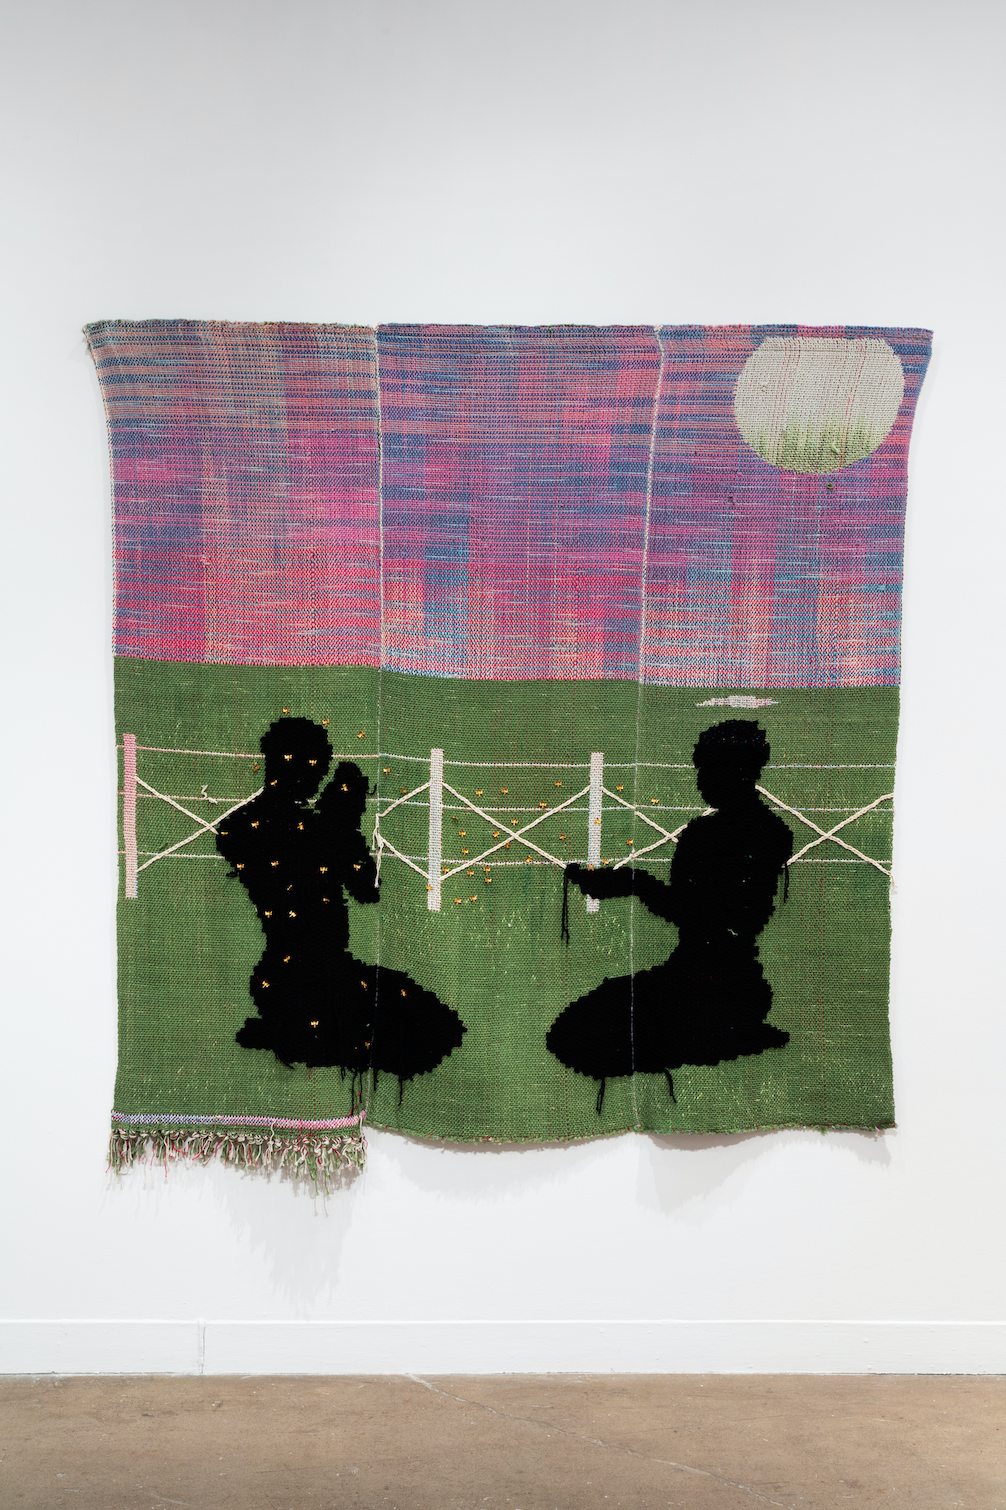 Diedrick Brackens, blessed are the mosquitoes (installation view), 2020, woven cotton and acrylic yarn. Image courtesy of Oakville Galleries. Photo: Laura Findlay.